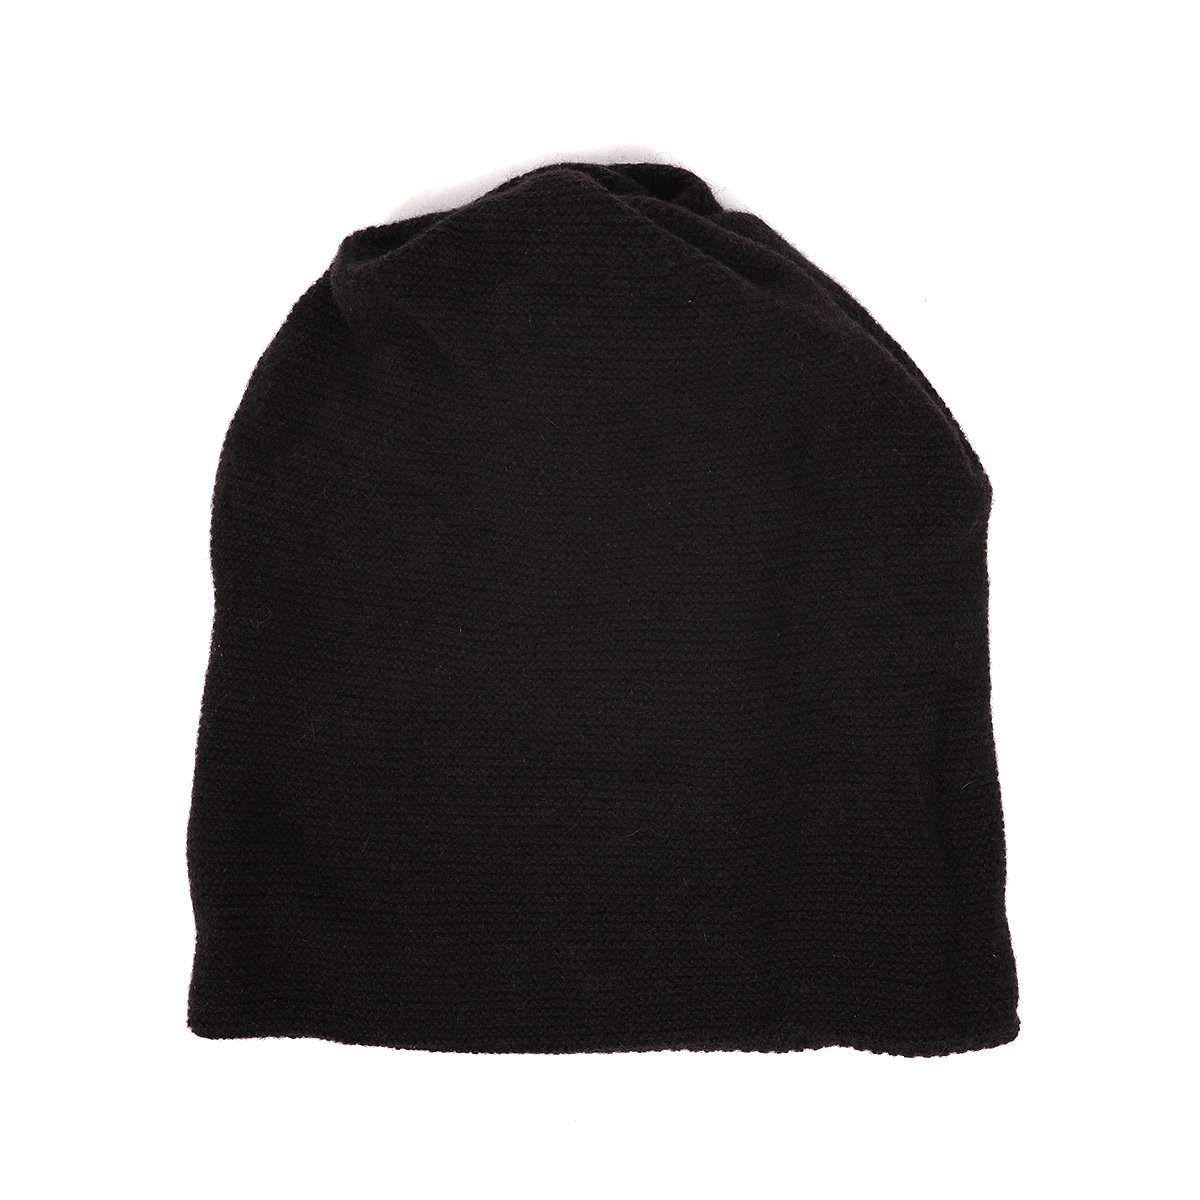 PURE CASHMERE SCREW KNITCAP 詳細画像2